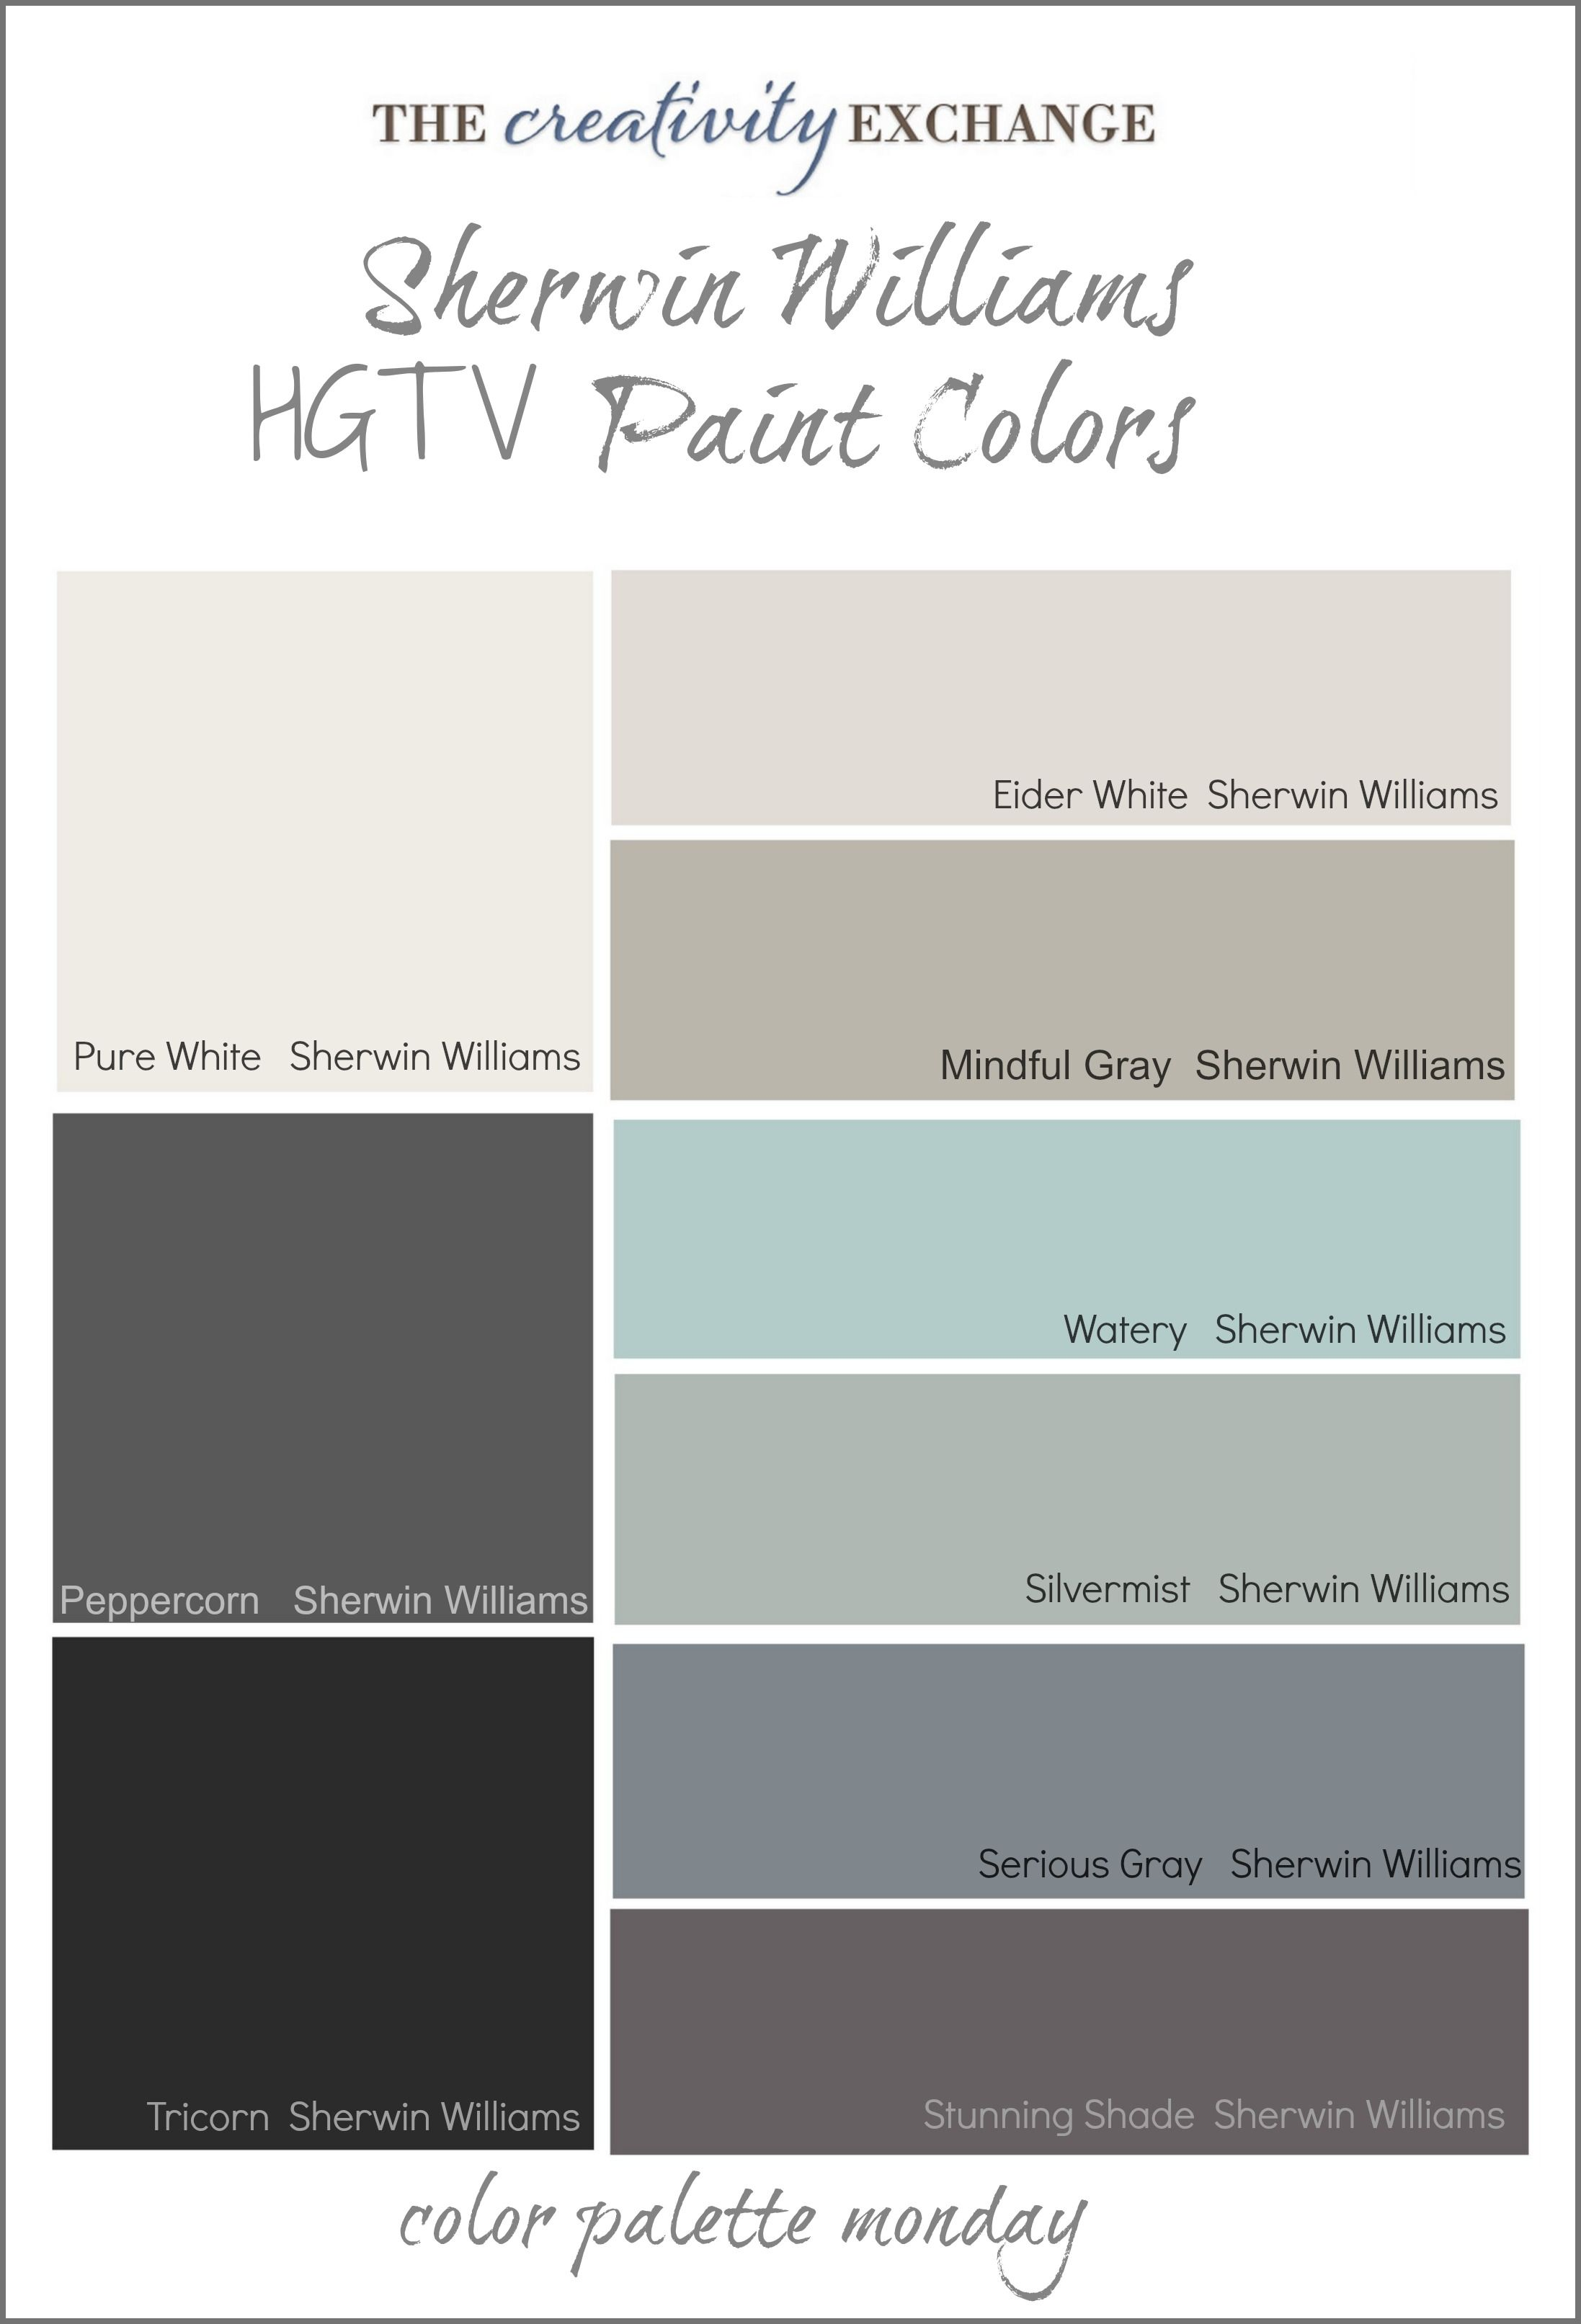 Most Popular Paint Colors Hgtv Paint Colors From Sherwin Williams  Hgtv Paint Colors Hgtv